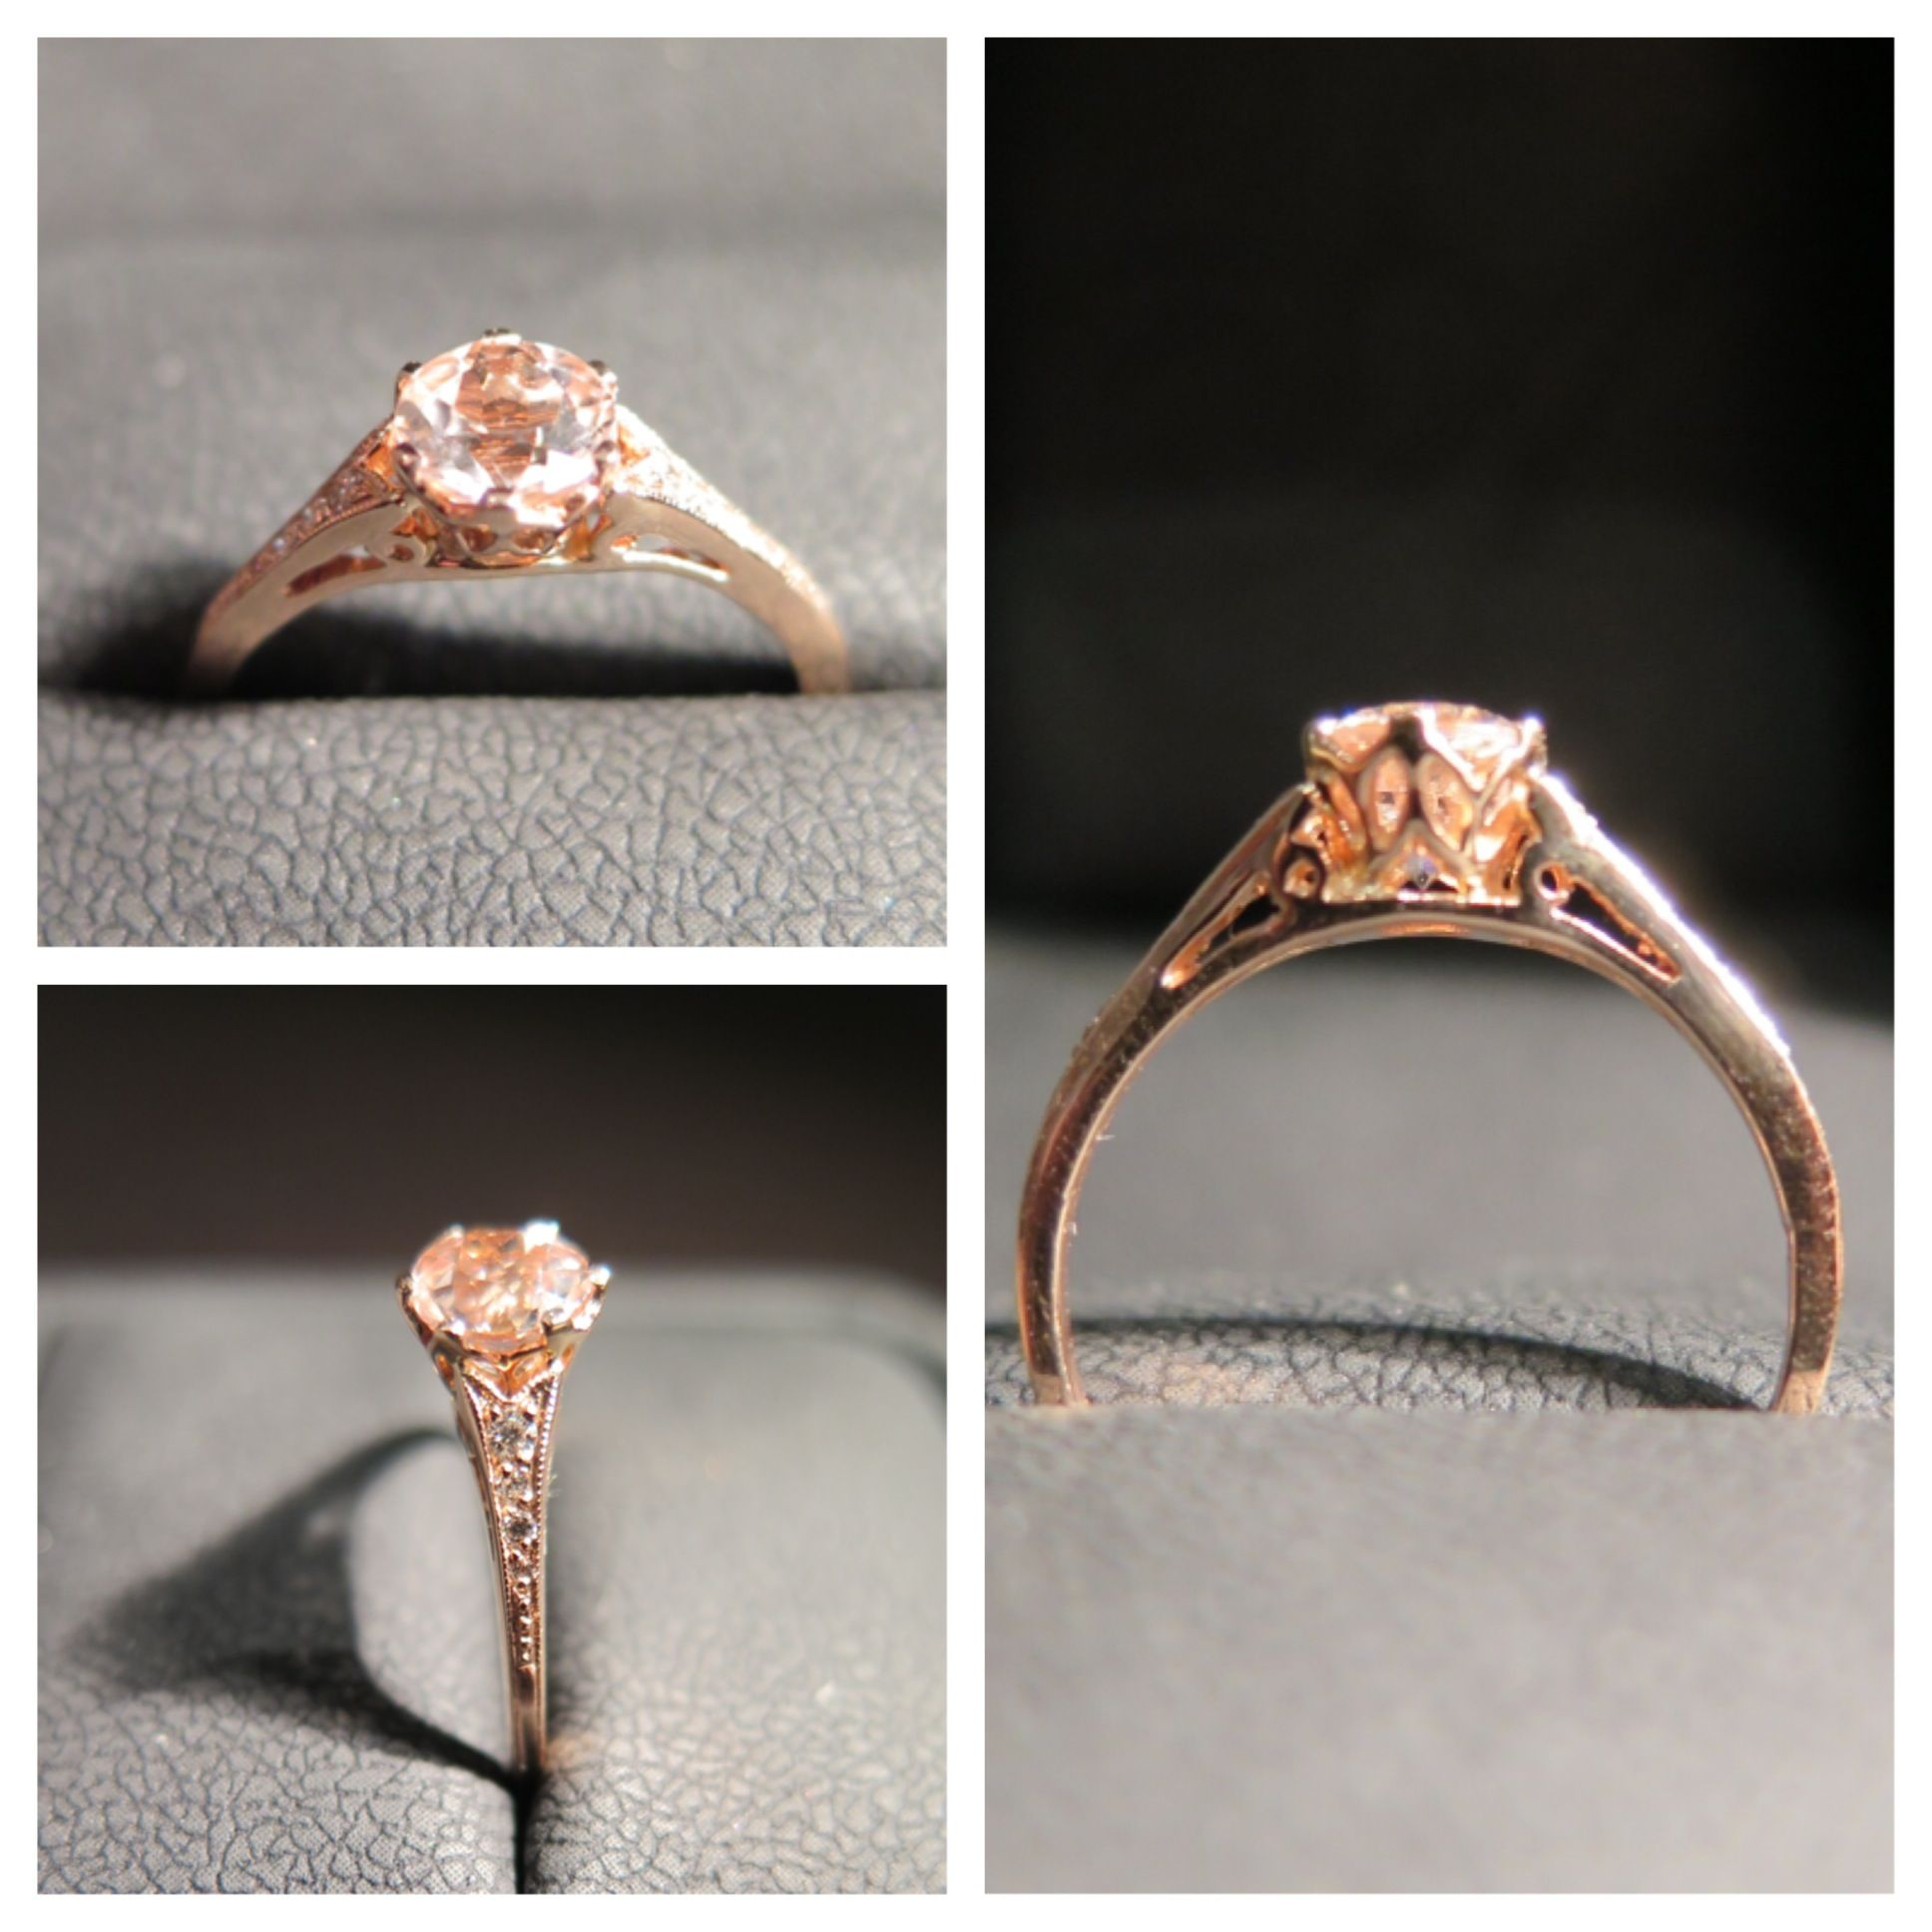 morganite rose gold engagement ring nontraditional engagement rings nyc catherine angiel catherine angiel - Non Traditional Wedding Rings